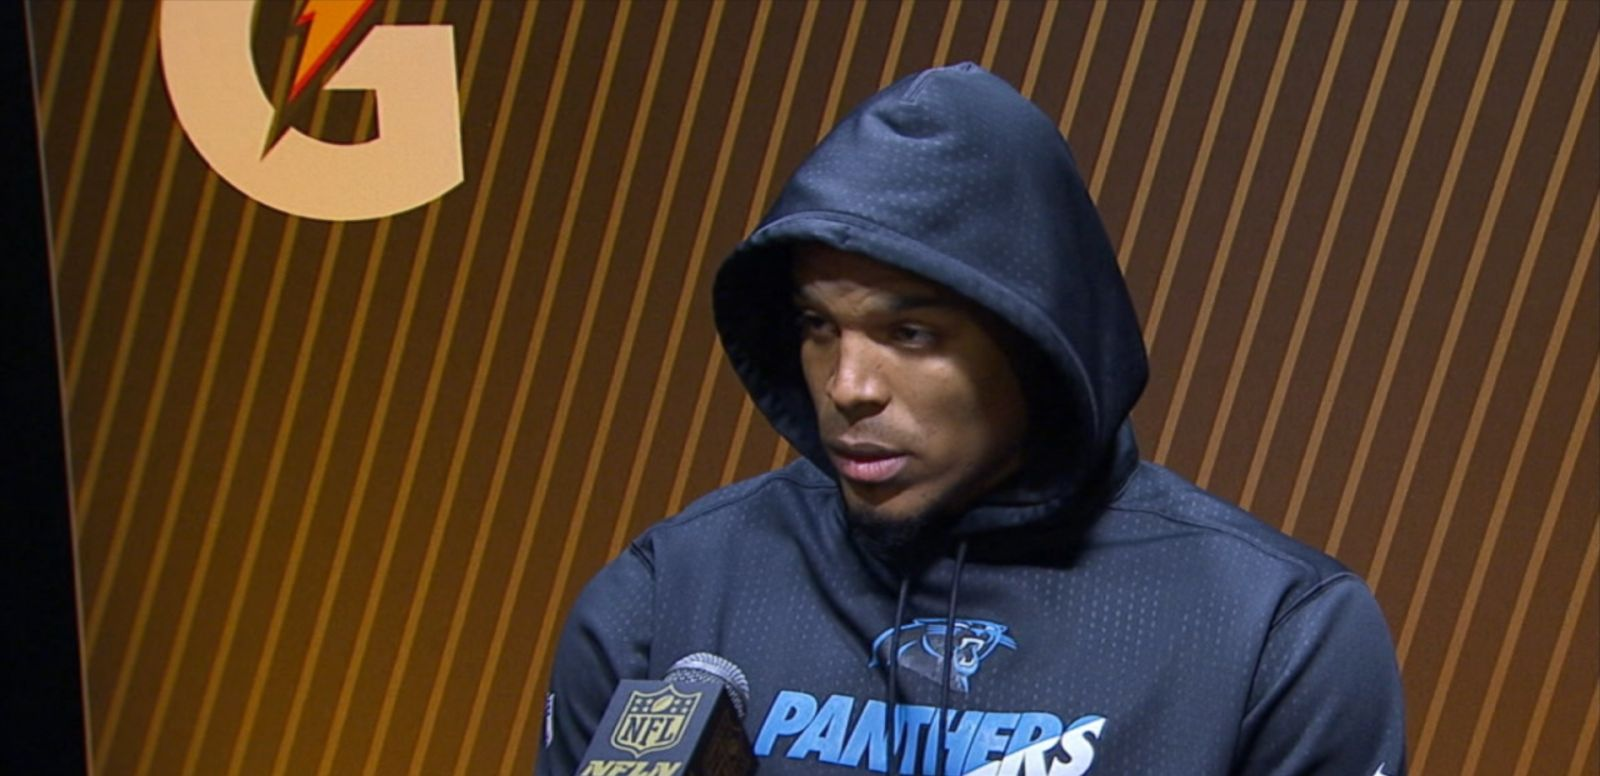 VIDEO: A Broncos player could be heard boasting about his team's win as the Carolina Panthers quarterback was answering questions from reporters.